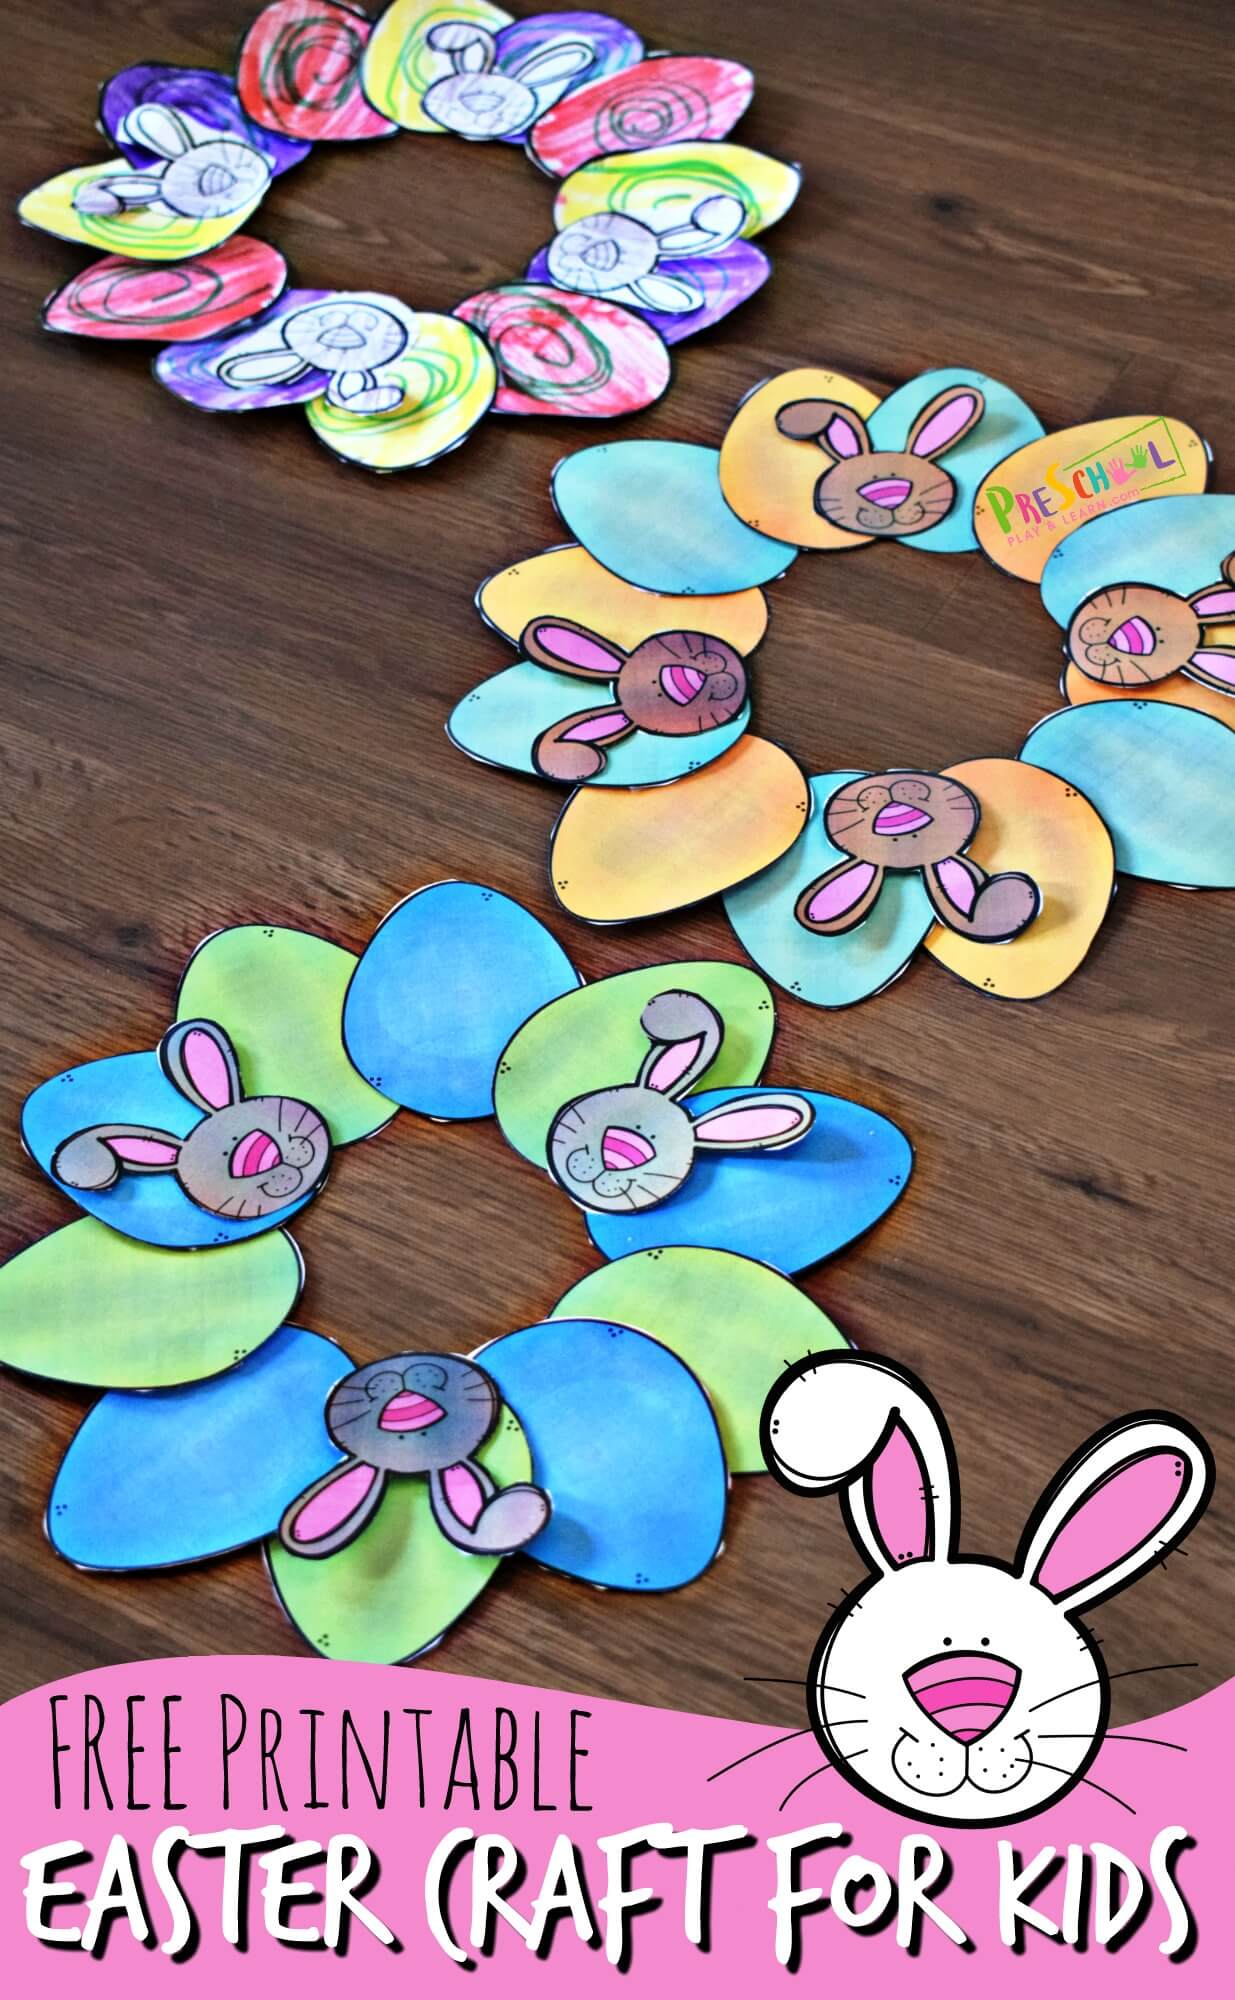 Free Printable Easter Crafts For Kids